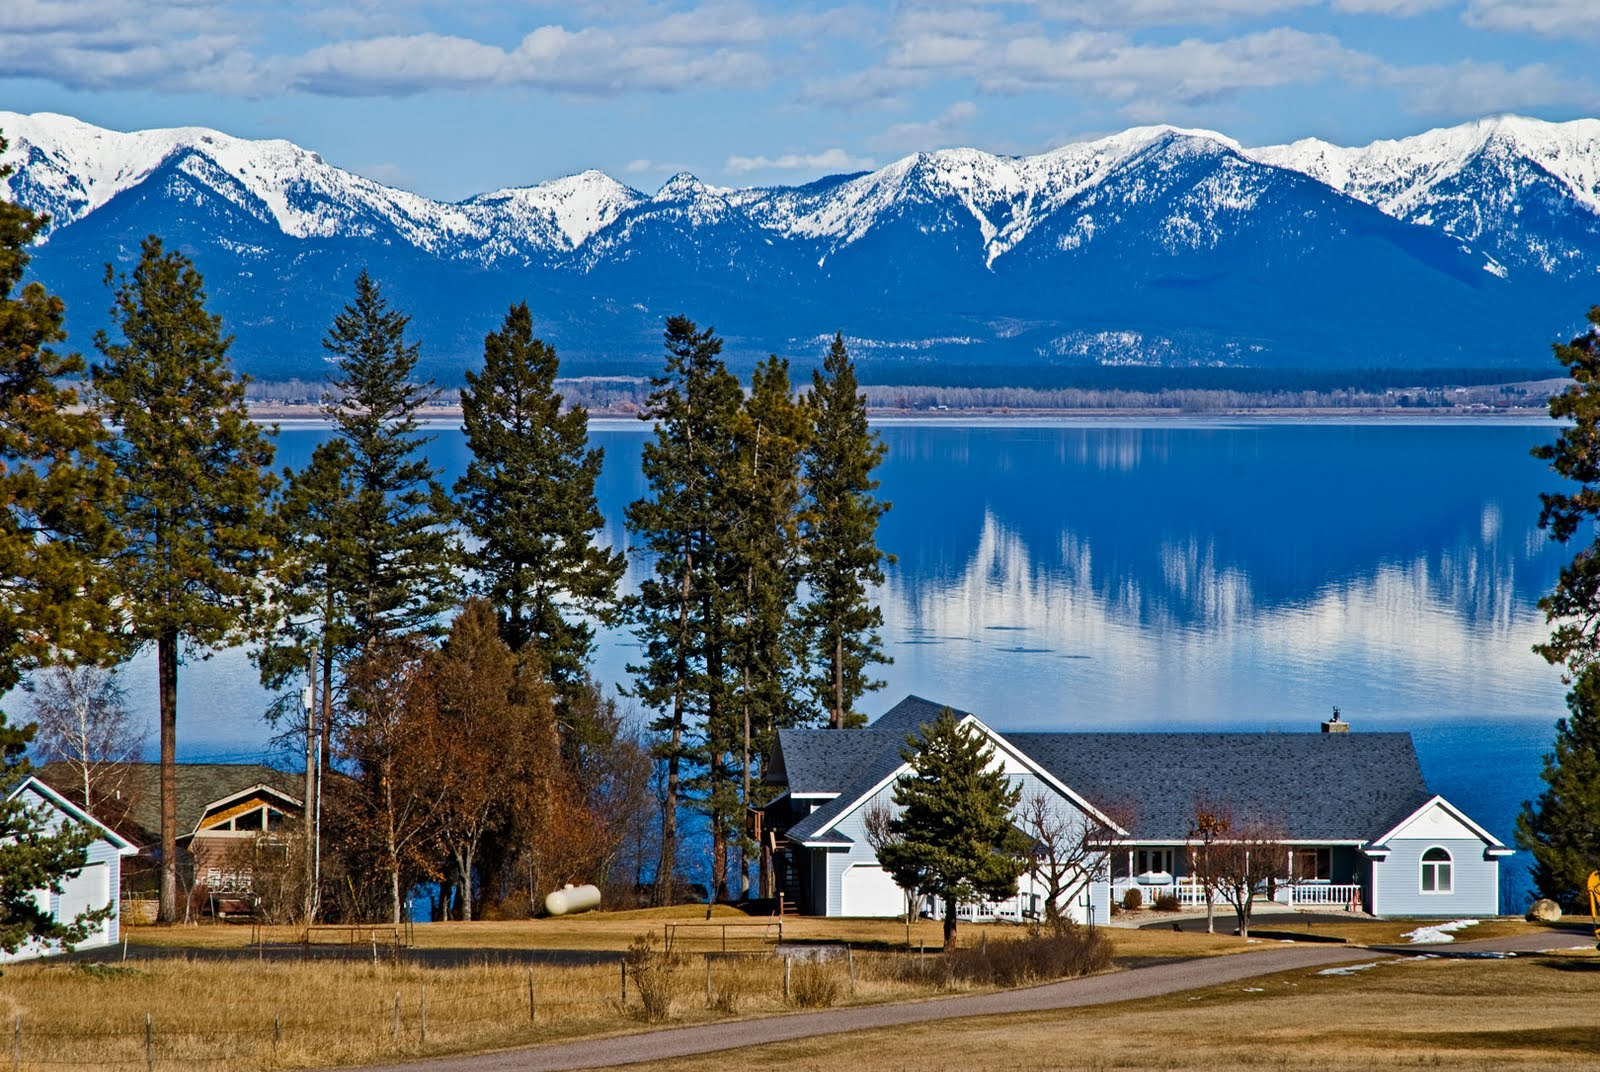 City Of Kalispell >> If there were witchcraft: 7. Flathead County, Montana